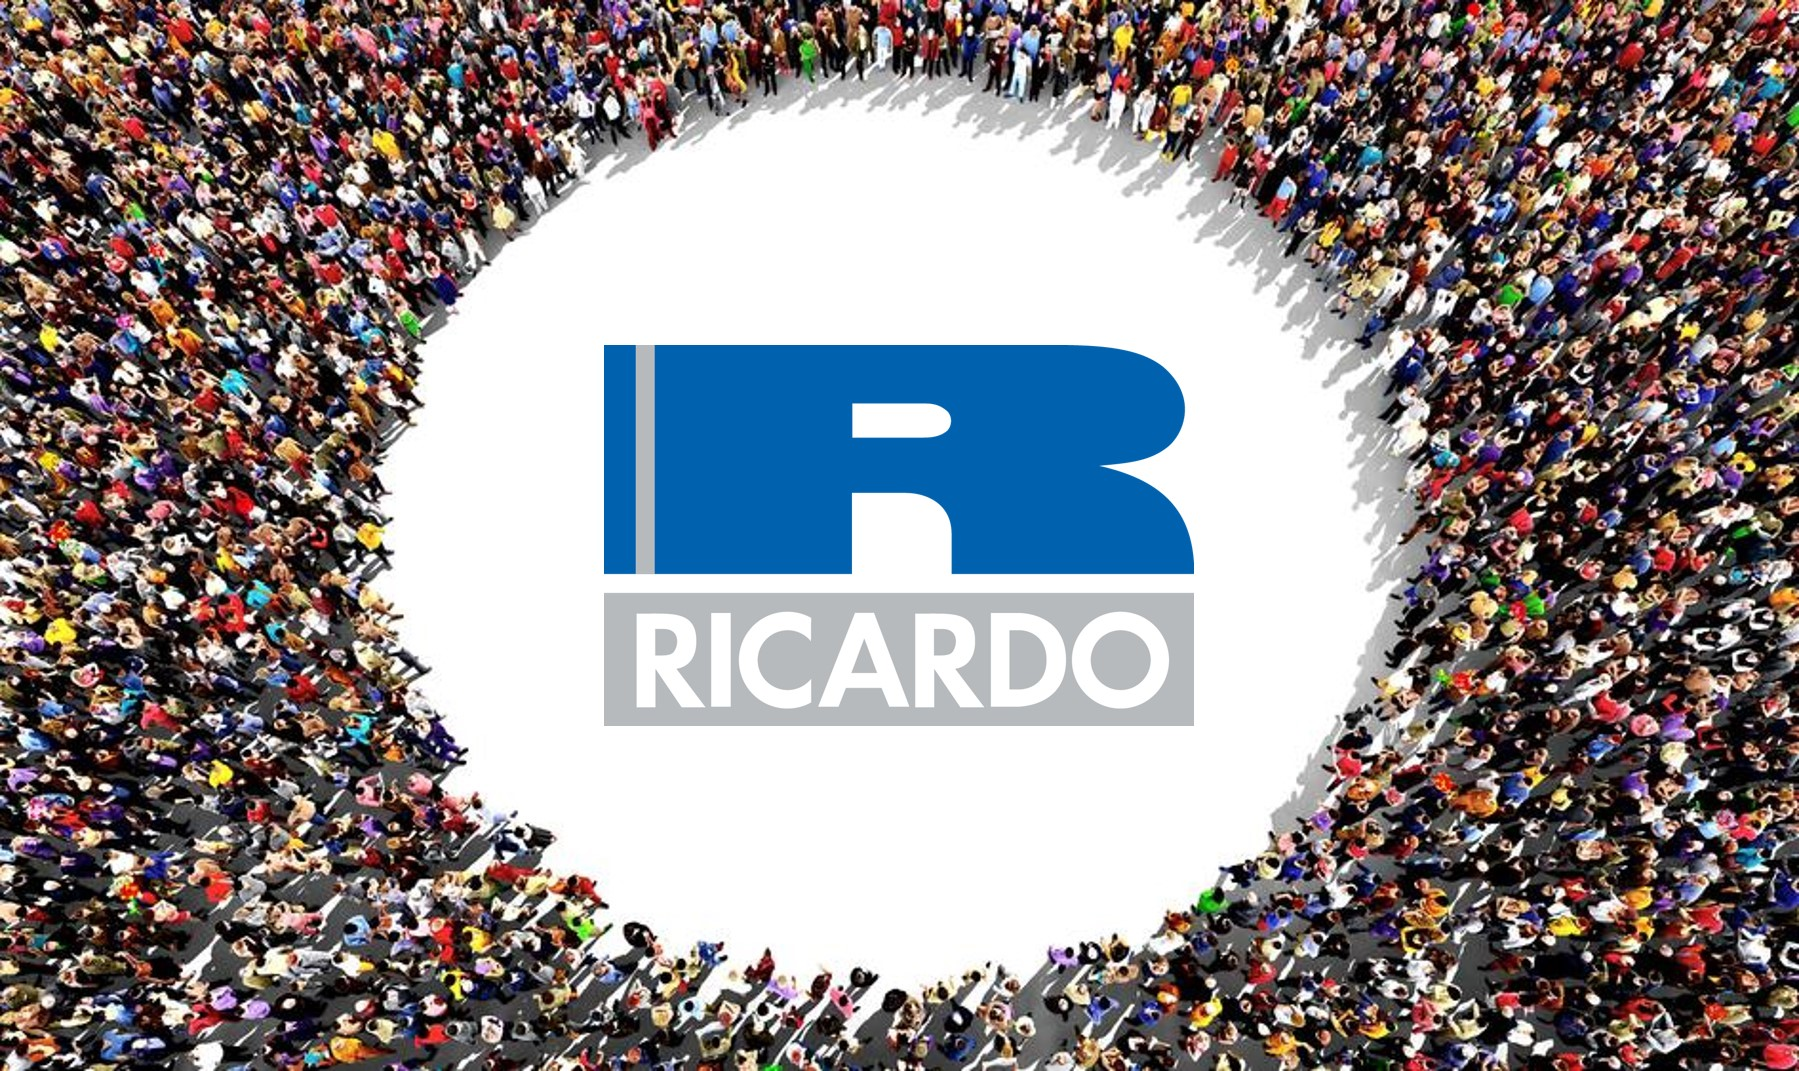 Why diversity and inclusion are important to Ricardo